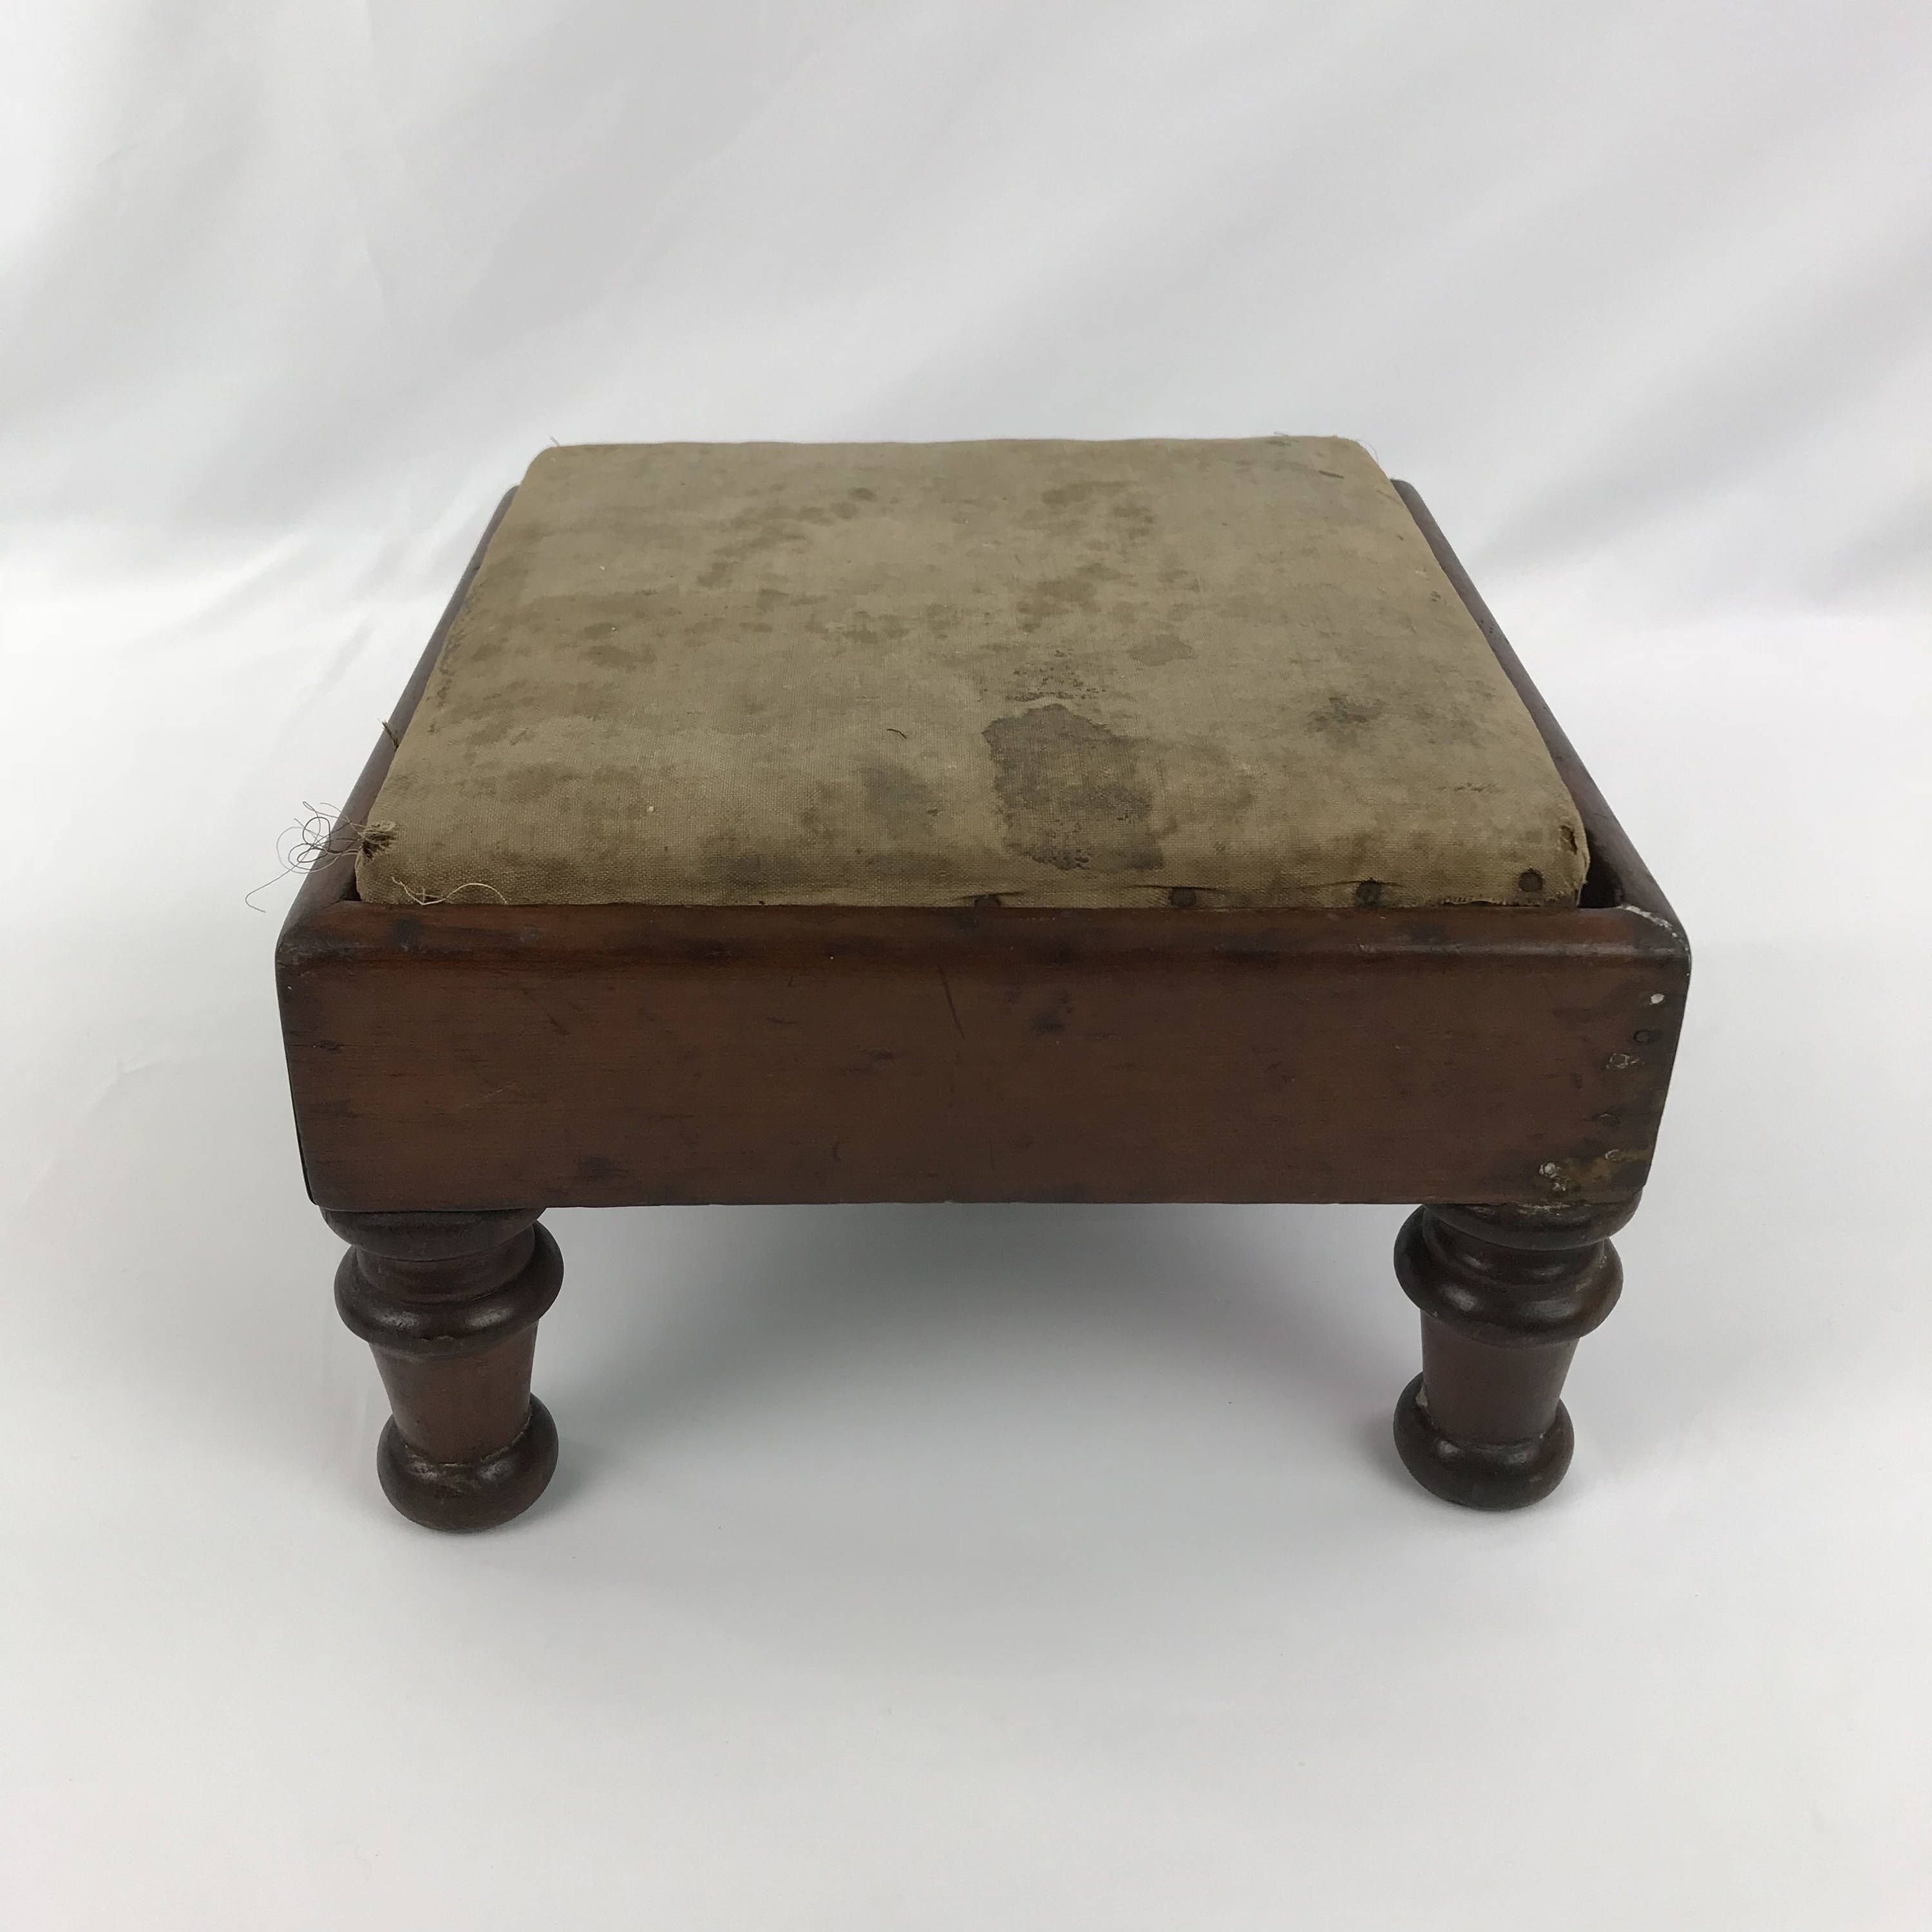 Vintage Square Wood Foot Stool With Original Cover And Turned Legs Wooden Step Stool Wood Footstool Vintage Foot R Wooden Step Stool Footstool Small Ottoman